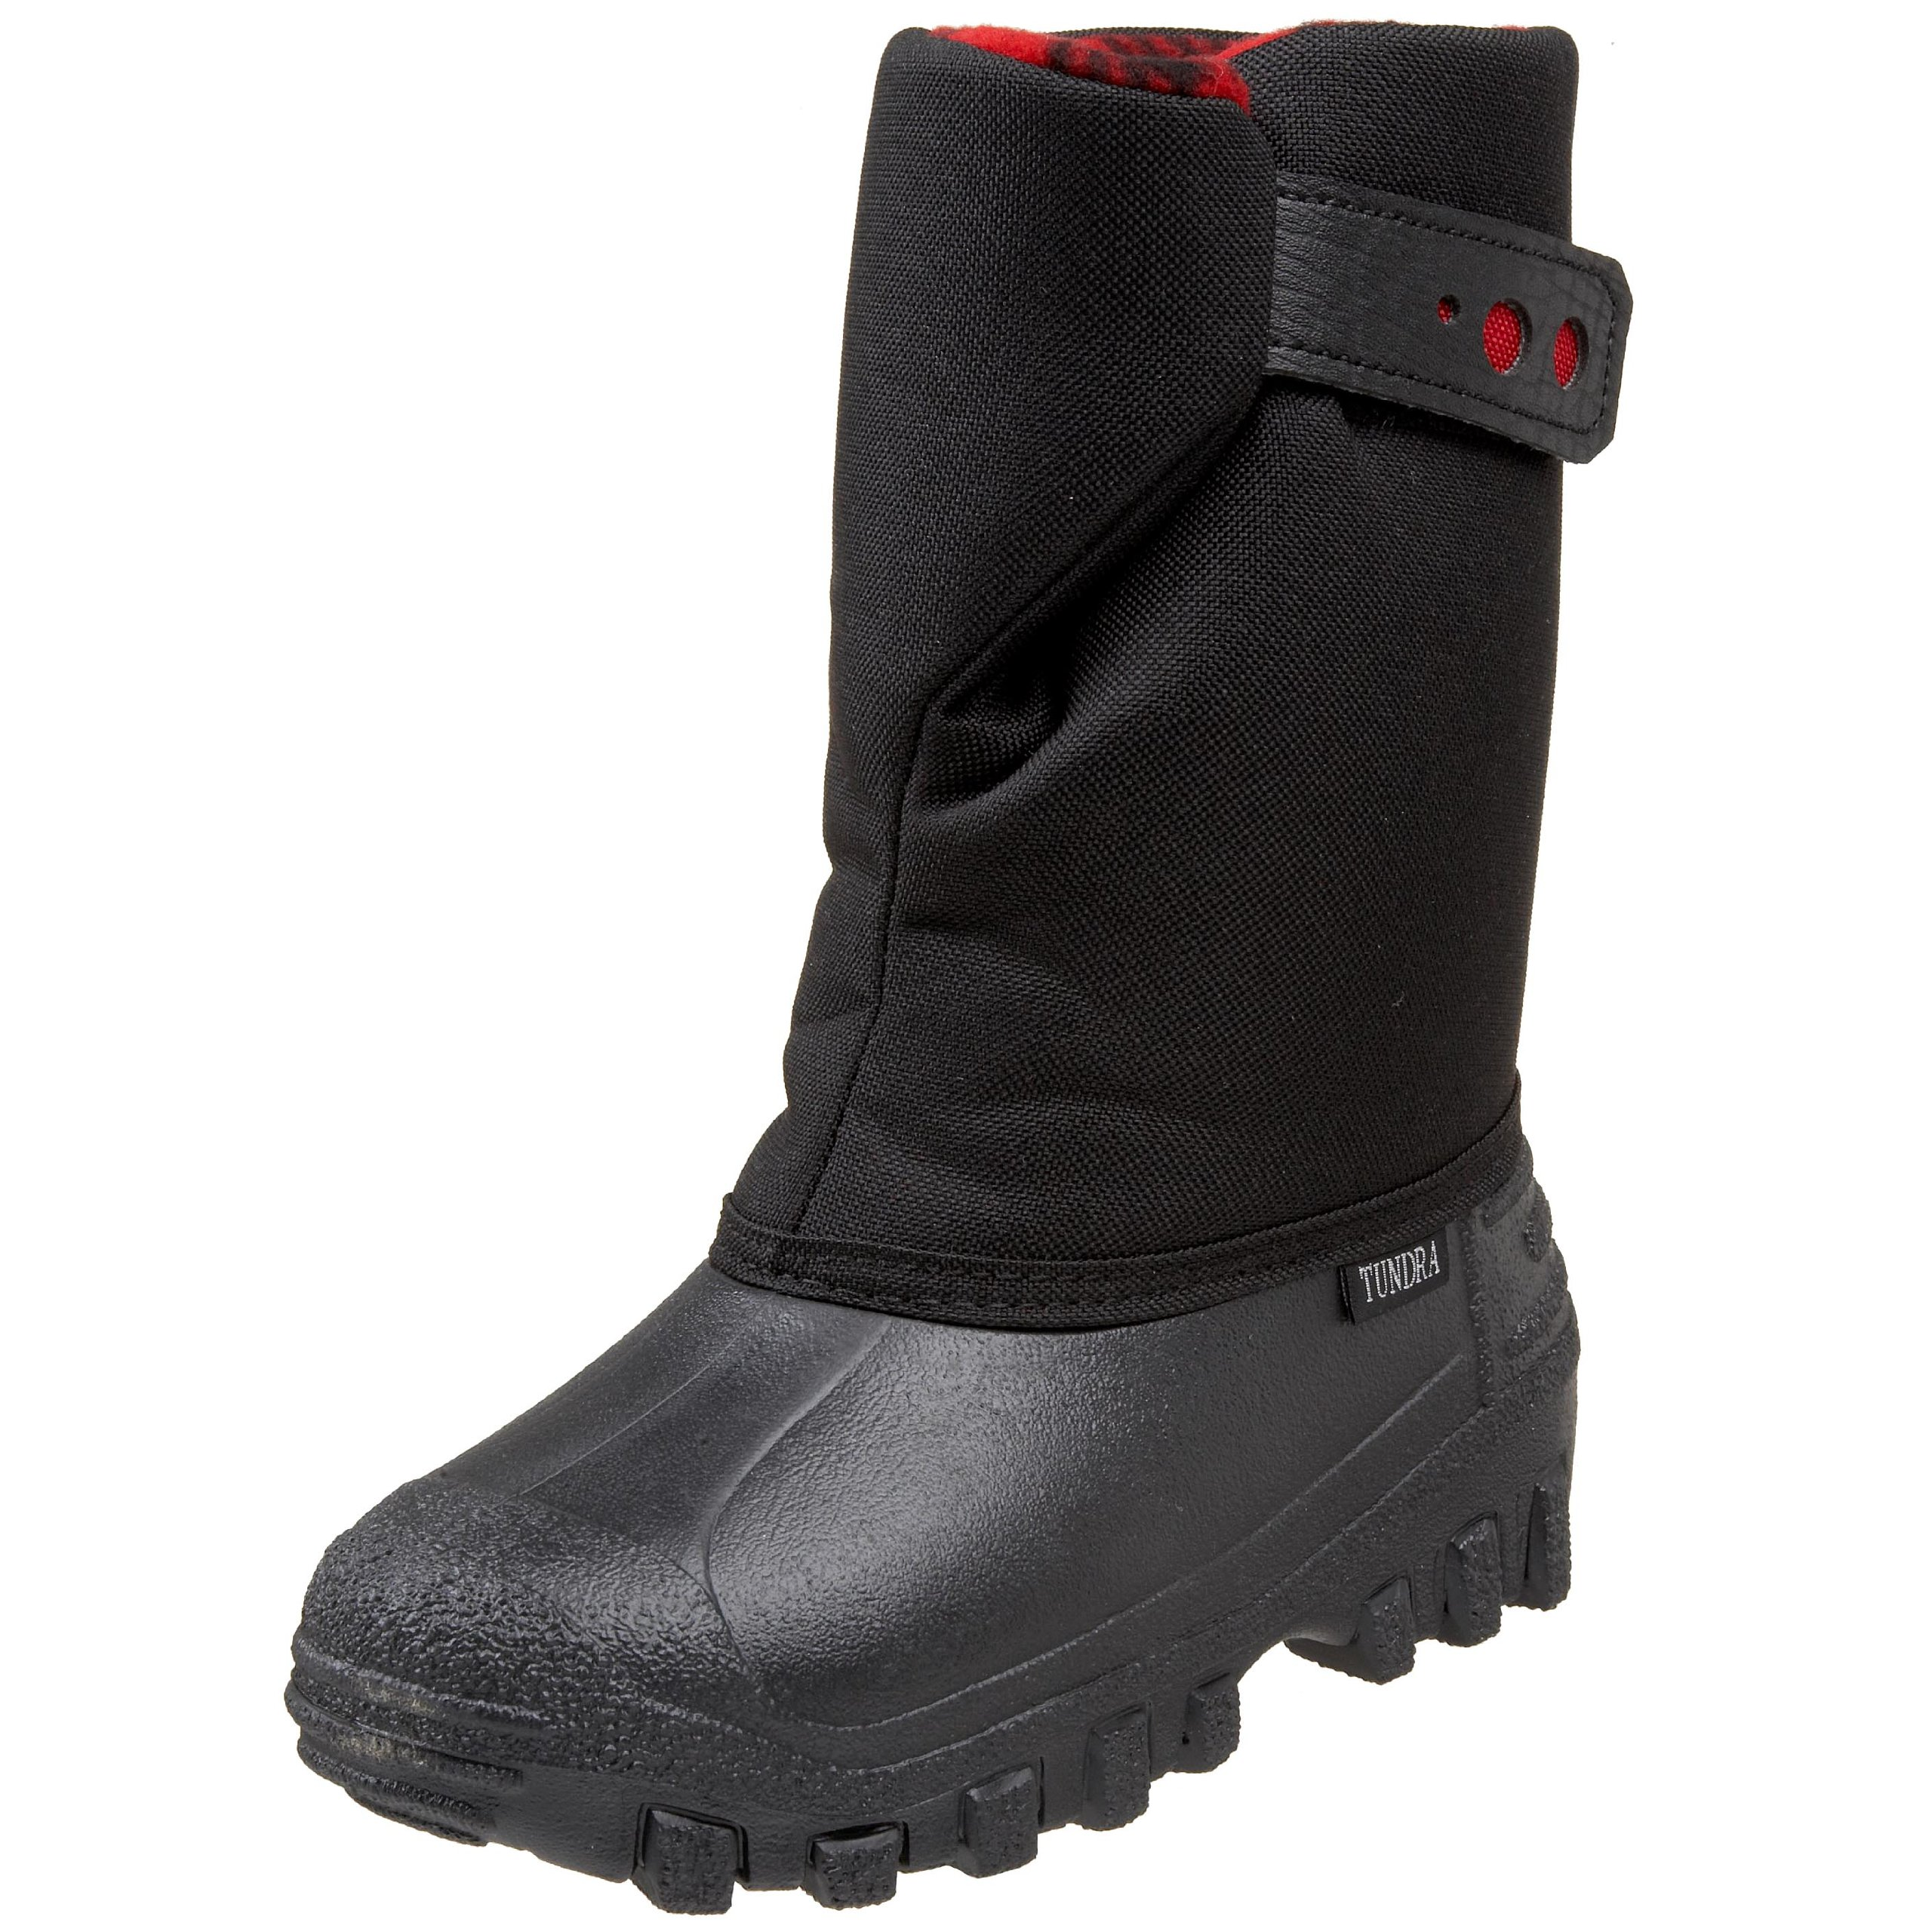 Tundra Teddy 4 (Toddler/Little Kid), Black/Red, 11 M US